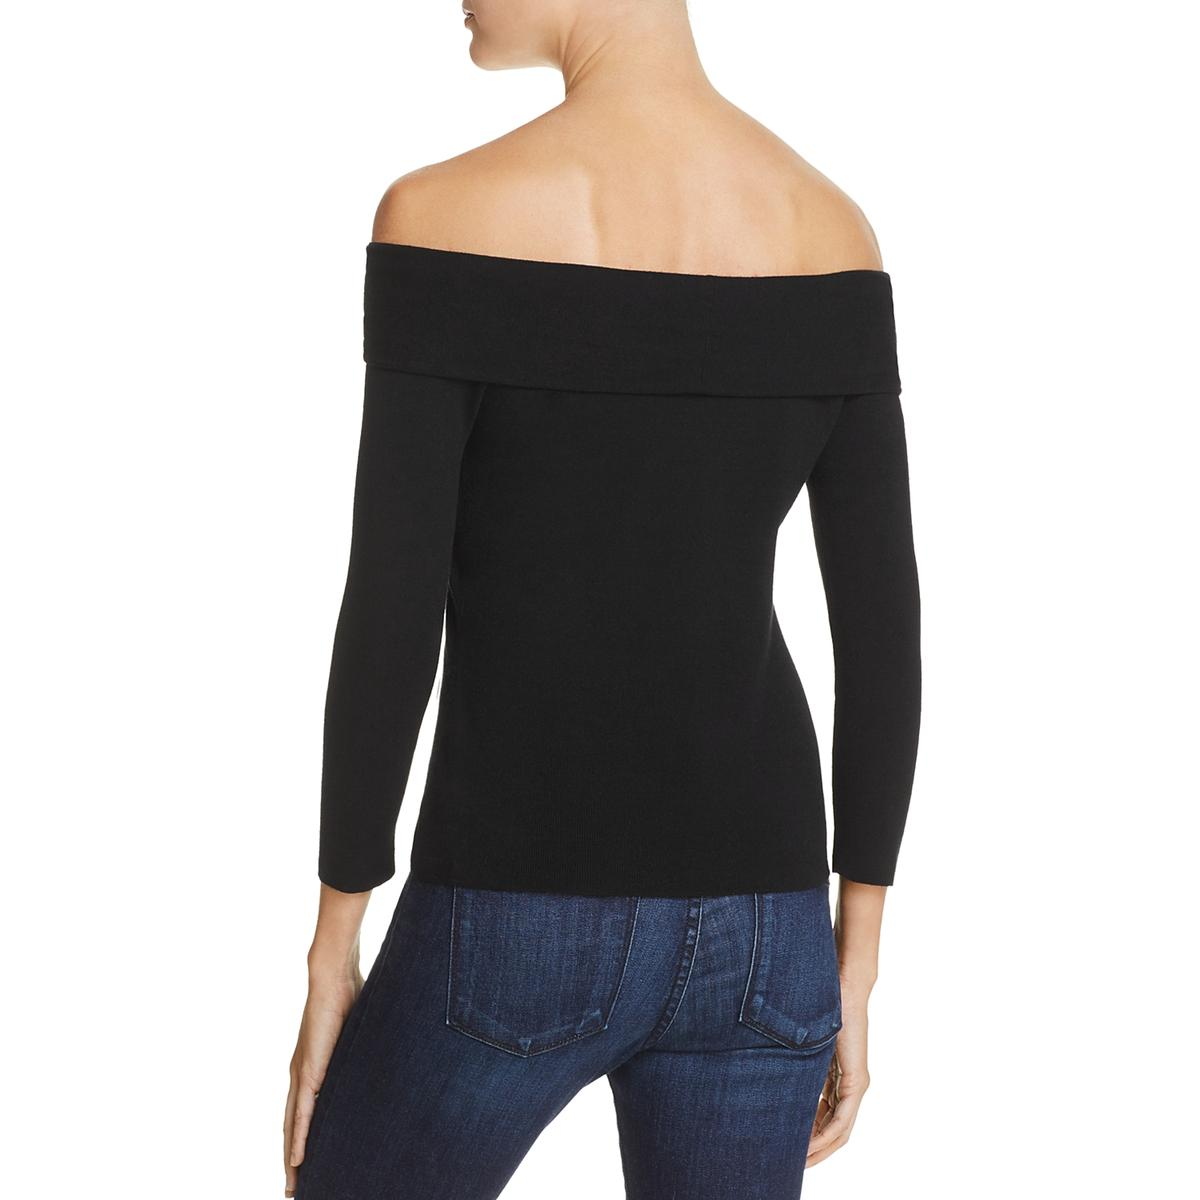 33e9ab44b5c63 Details about Milly Womens Off-The Shoulder Three-Quarter Sleeve Knit Top  Shirt BHFO 2412